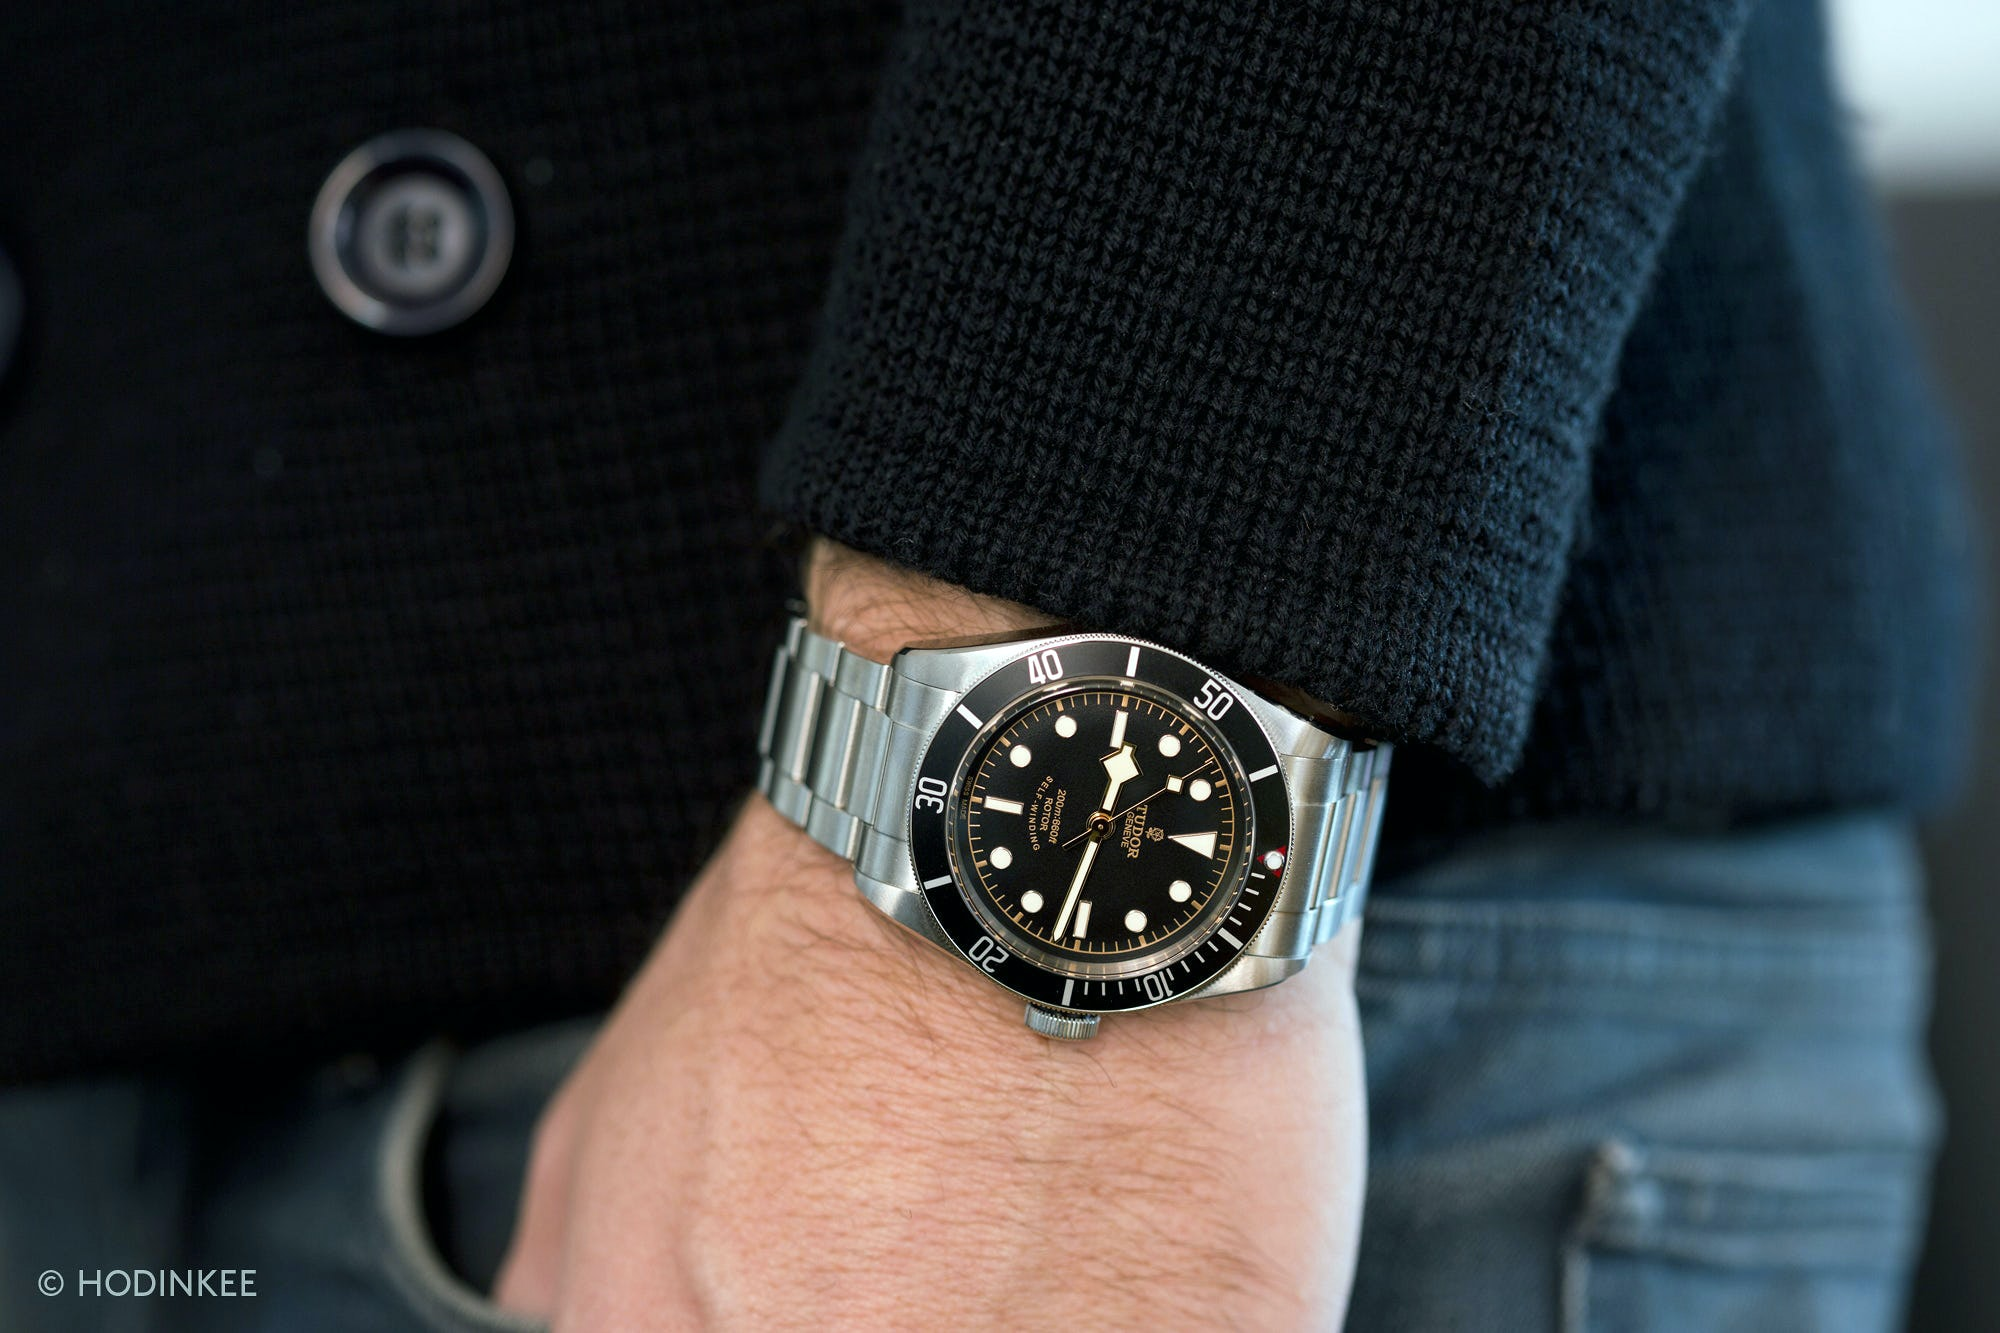 A Week On The Wrist: Ten Of The Biggest, Baddest HODINKEE Reviews Ever A Week On The Wrist: Ten Of The Biggest, Baddest HODINKEE Reviews Ever tudor2